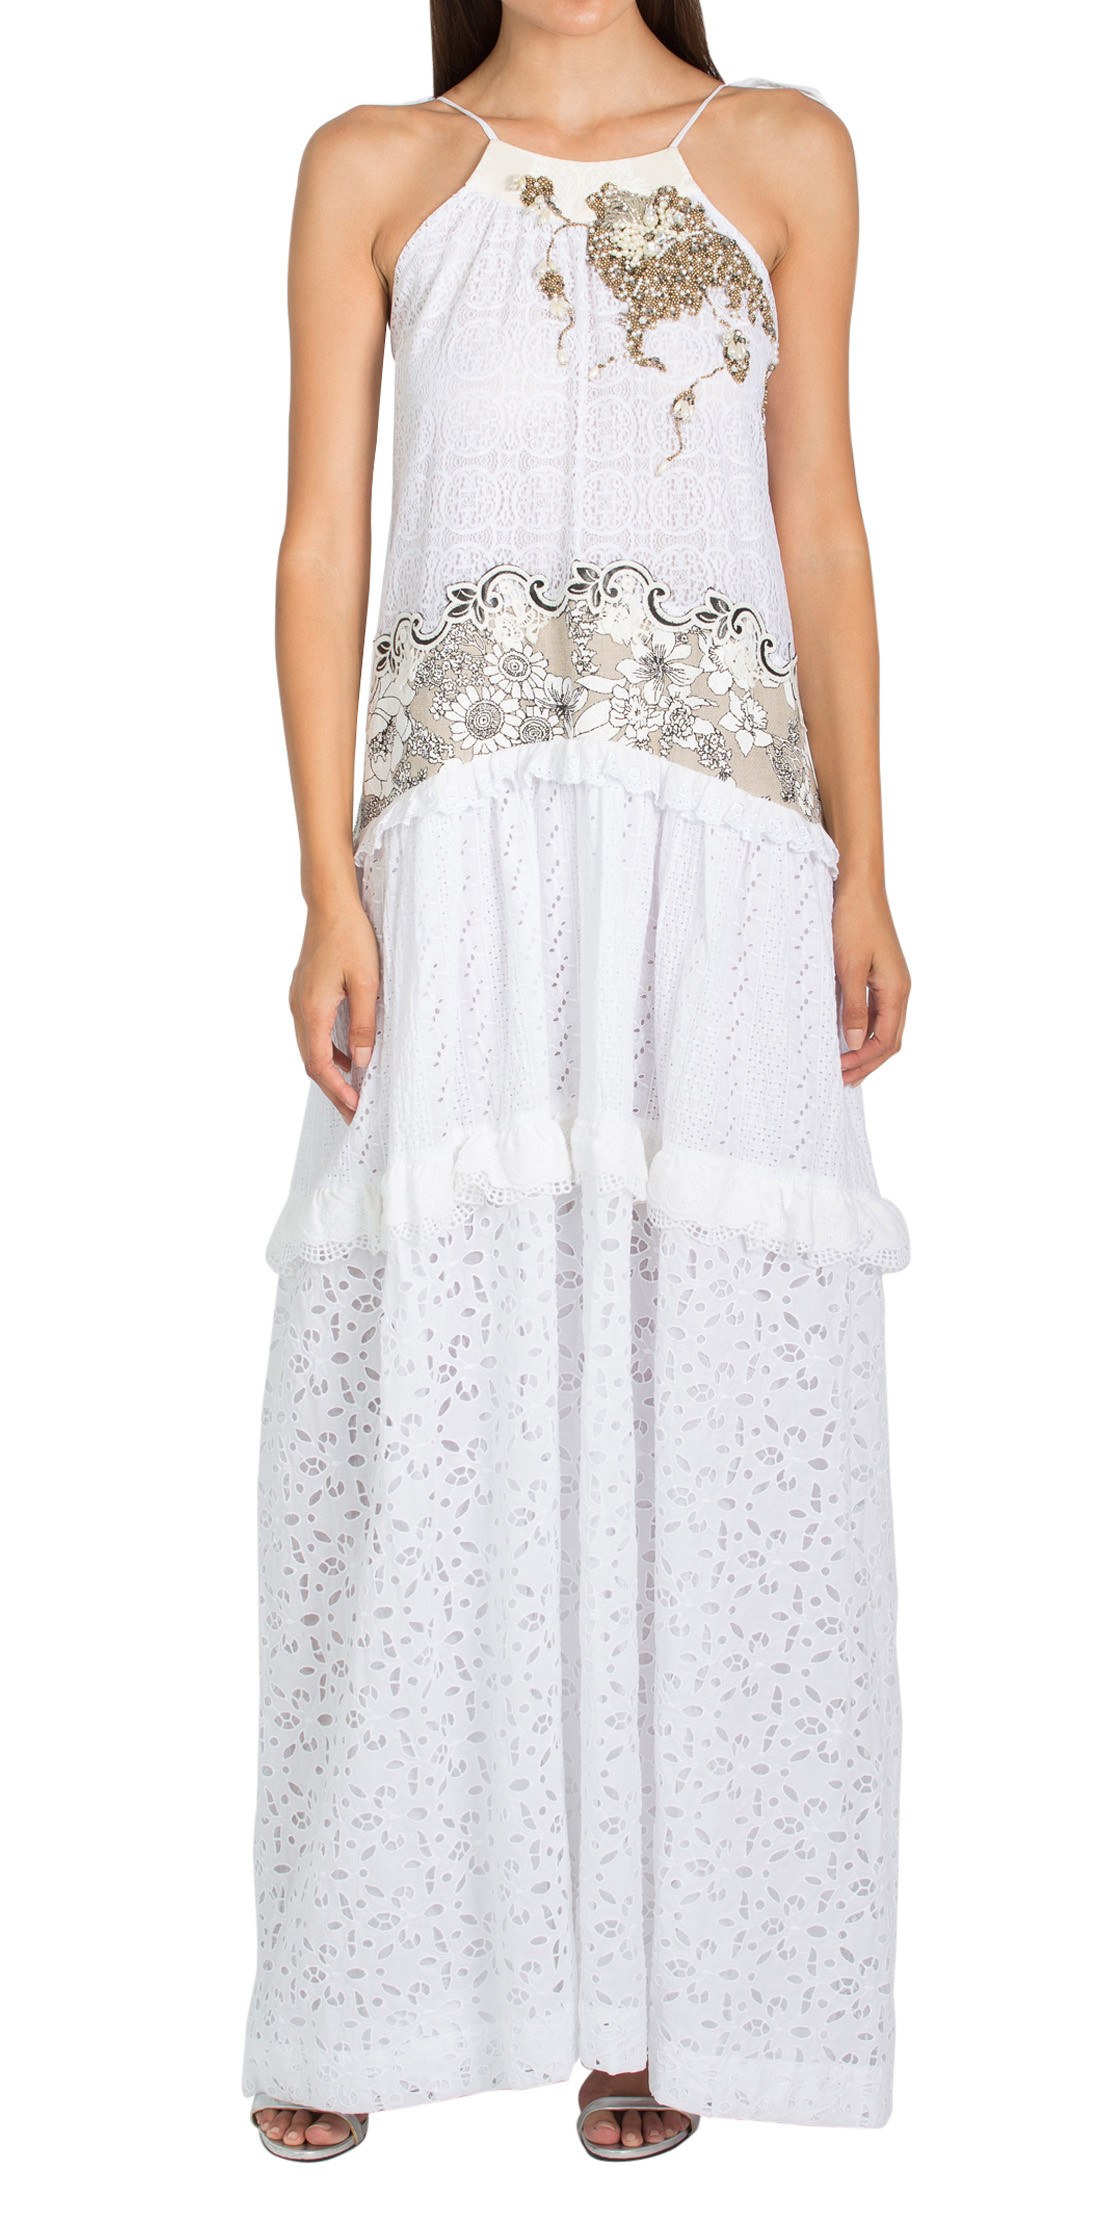 Antonio Marras Lace Ruffled Dress